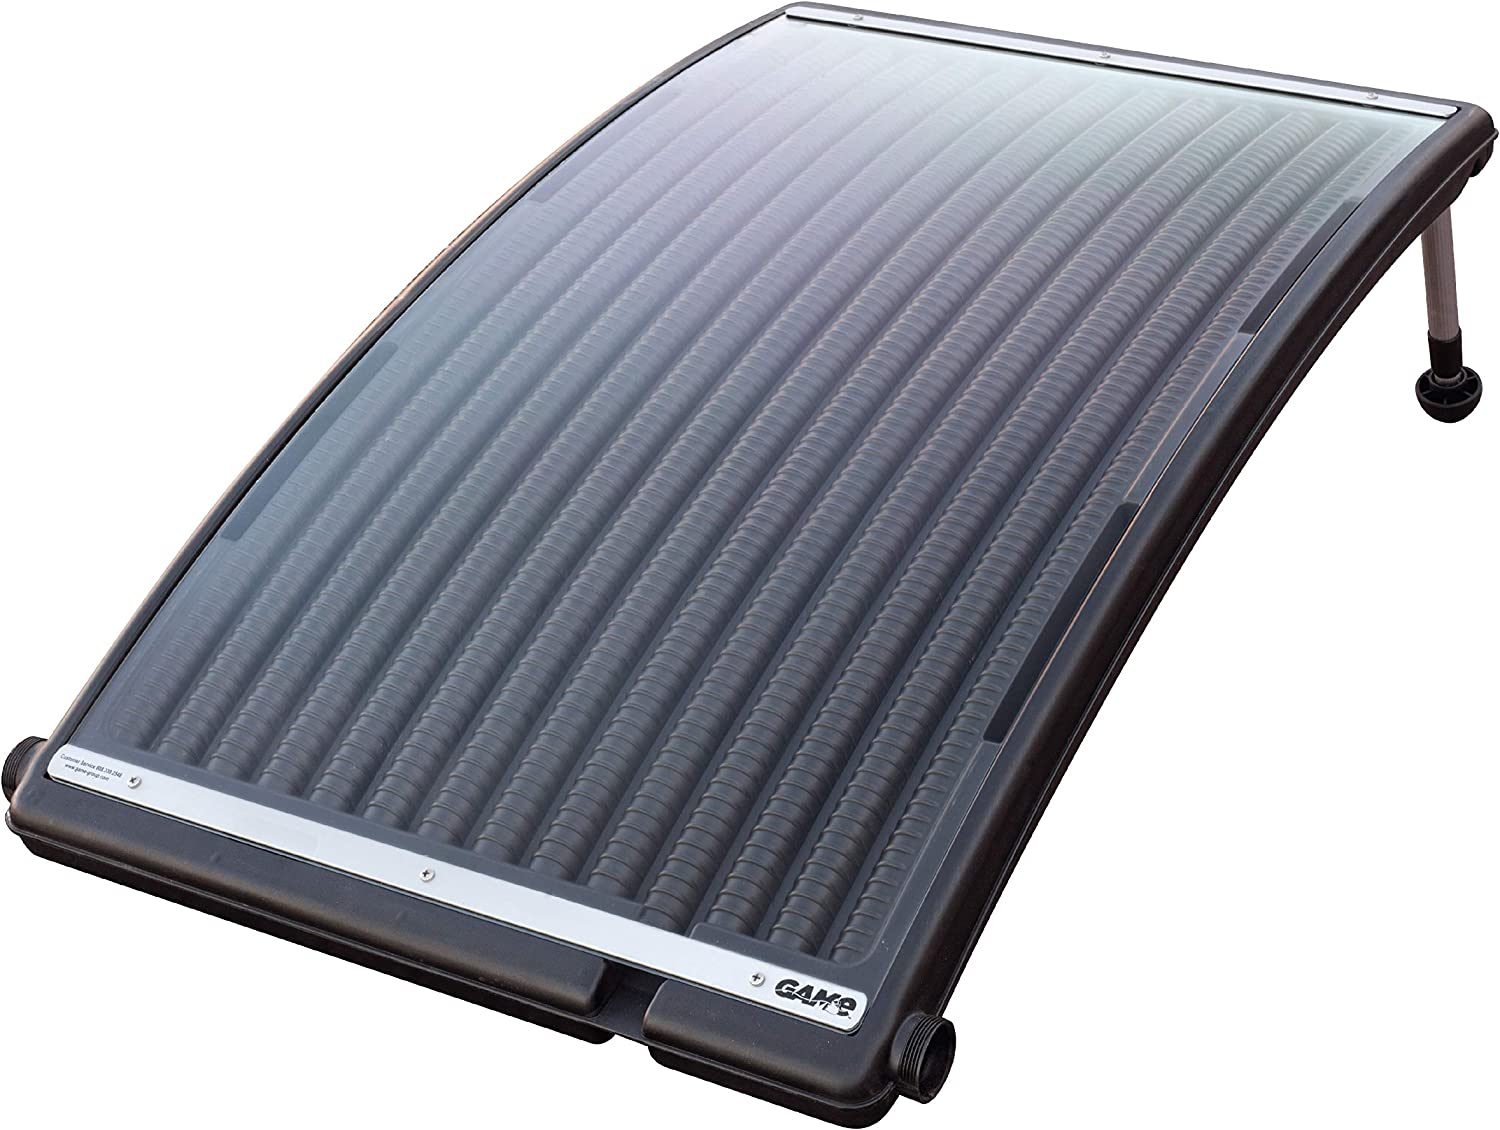 SolarPRO Pool Heater  Comparison Chart